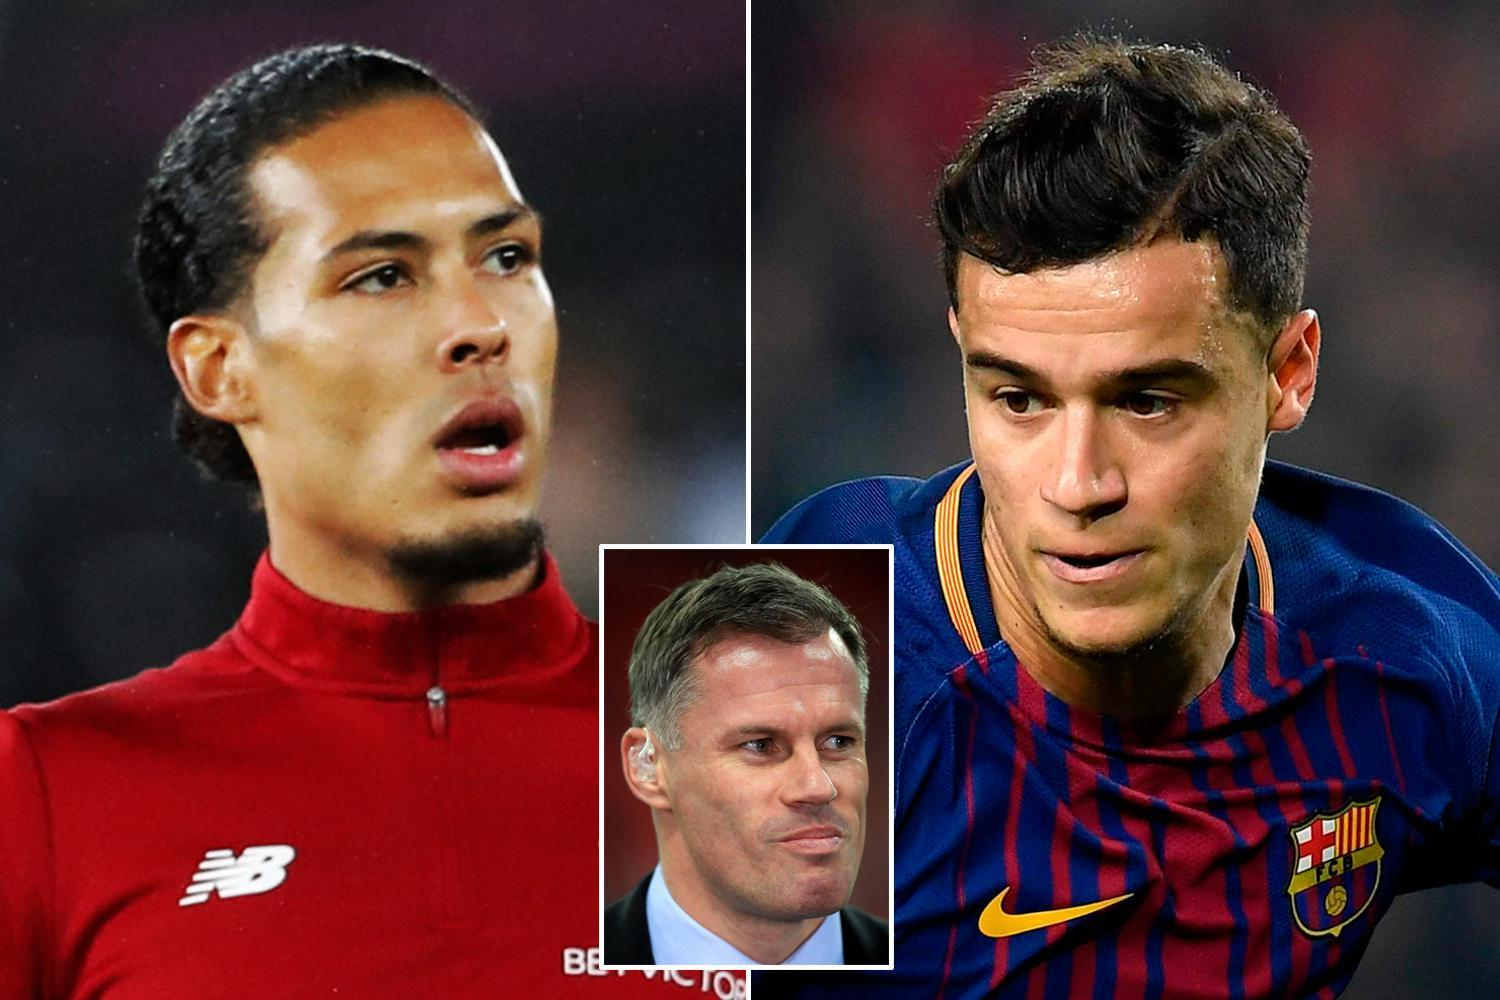 Jamie Carragher says Virgil van Dijk needs to lose weight and is not impressed with Liverpool's January dealings